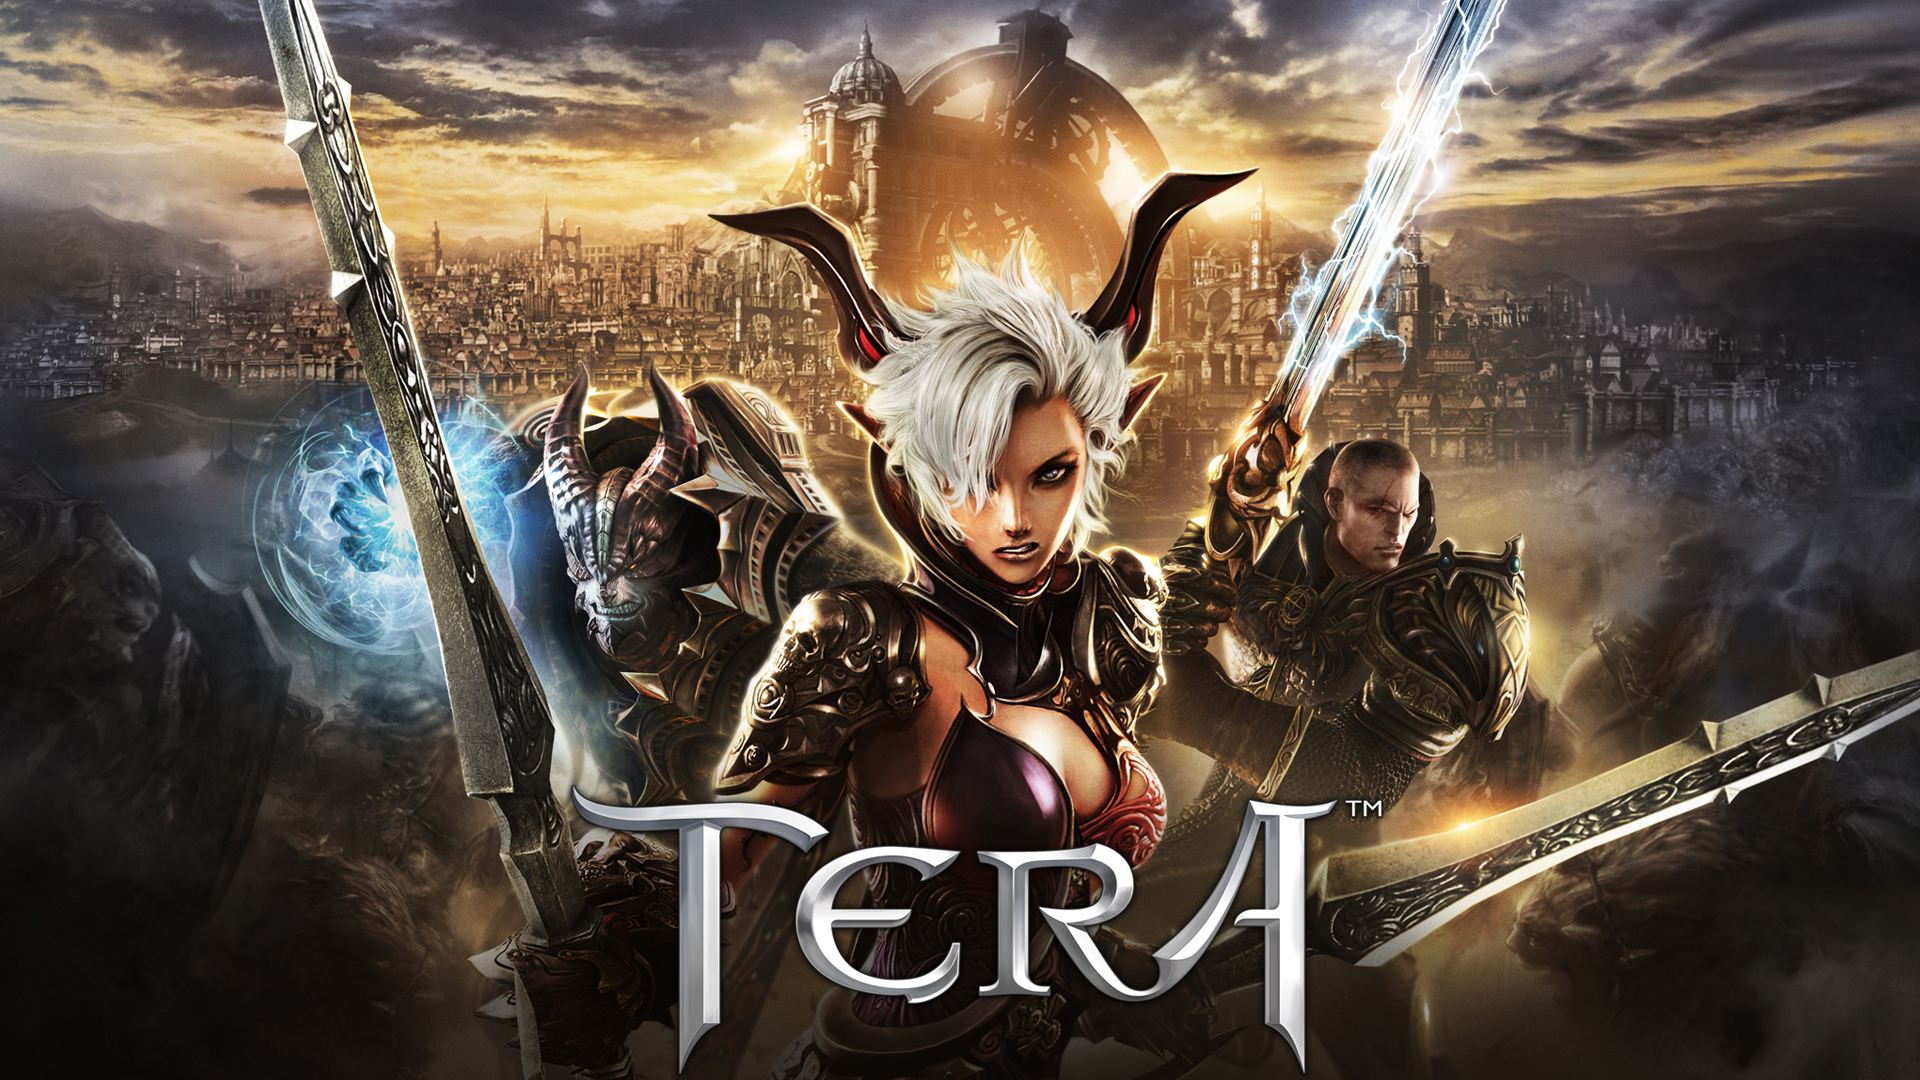 tera rising reaches over half a million new players since